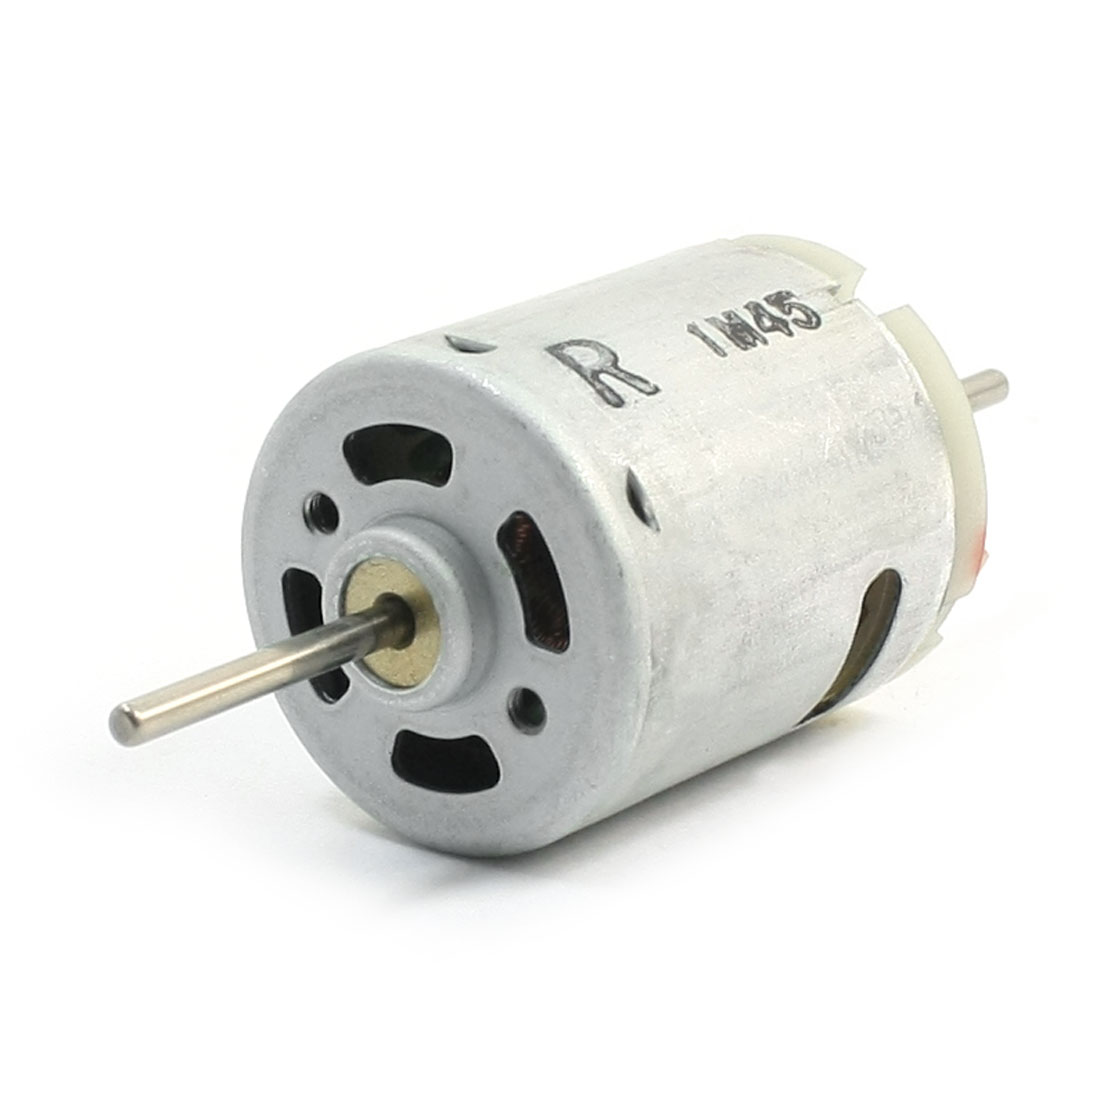 DC-6-12V-22000RPM-Rotation-Speed-2-3mm-Shaft-Diameter-Motor